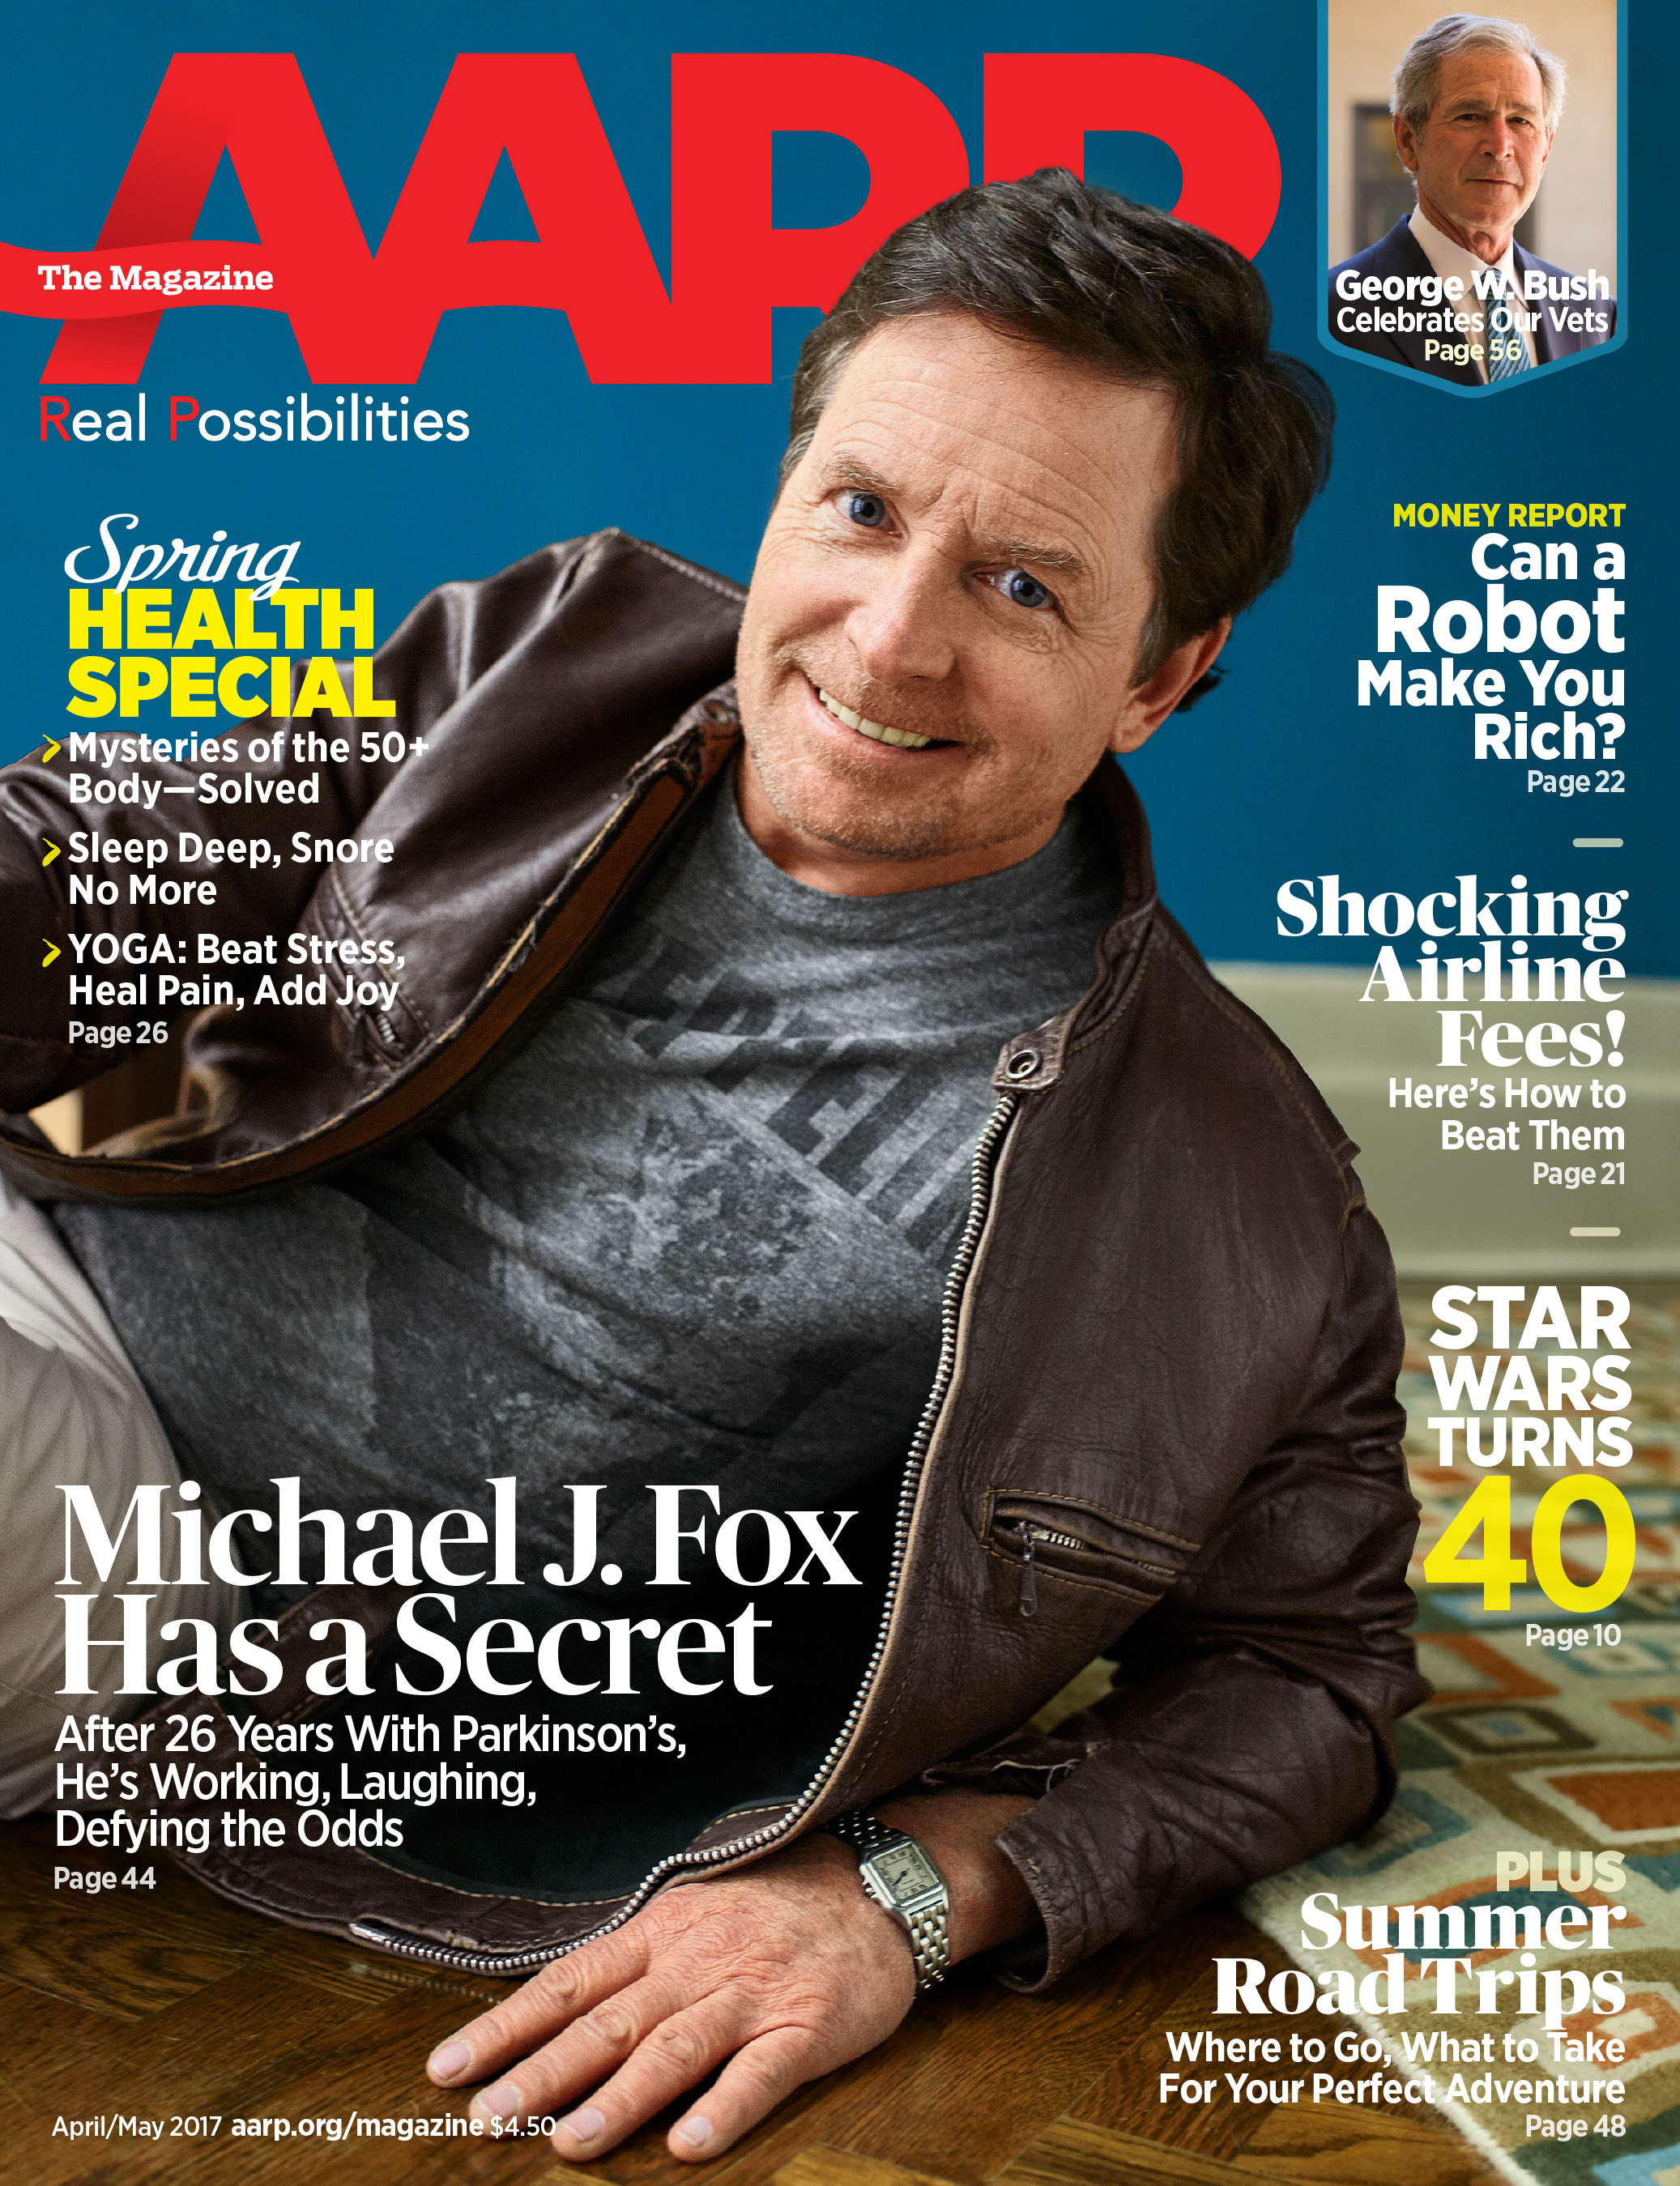 Michael J. Fox on the cover of AARP The Magazine.